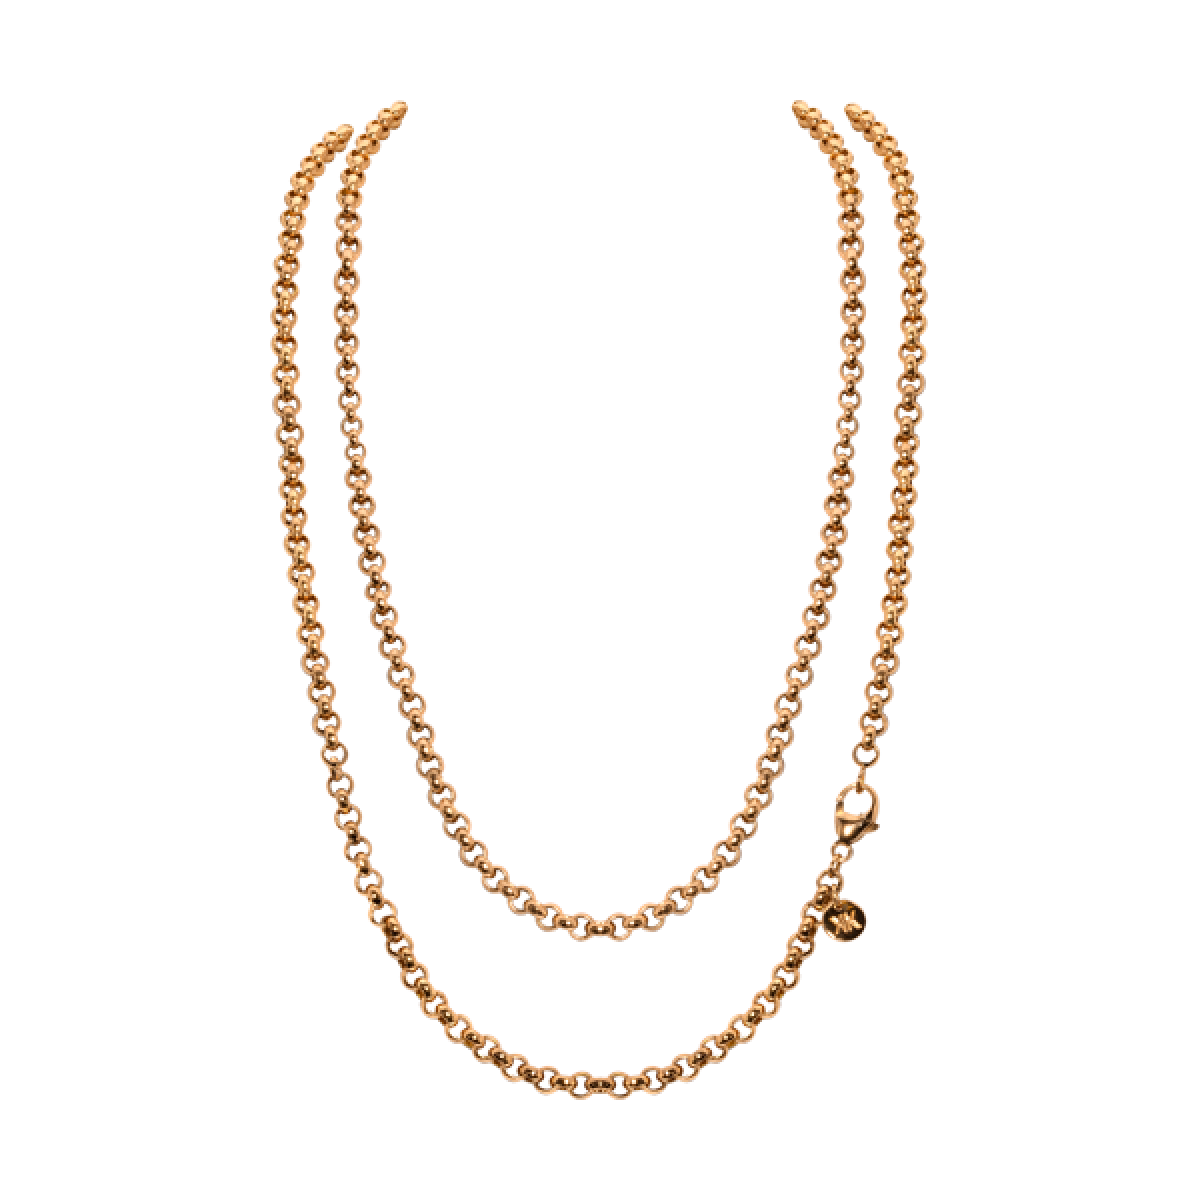 Jewellery Chain PNG Pictures image #42720